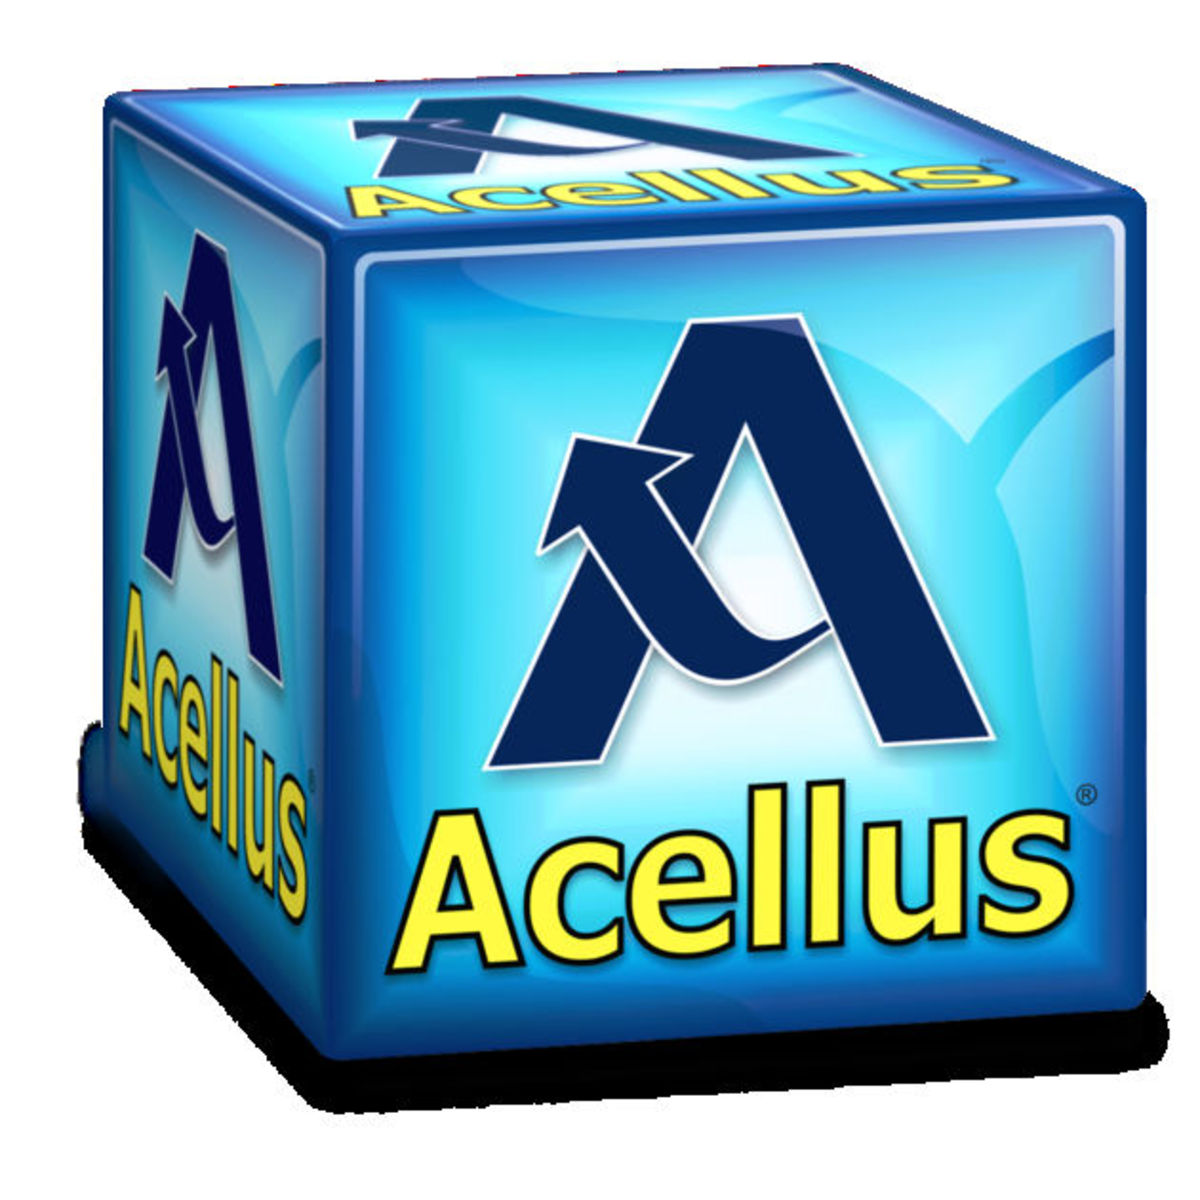 Answers to New and Old Questions About Acellus